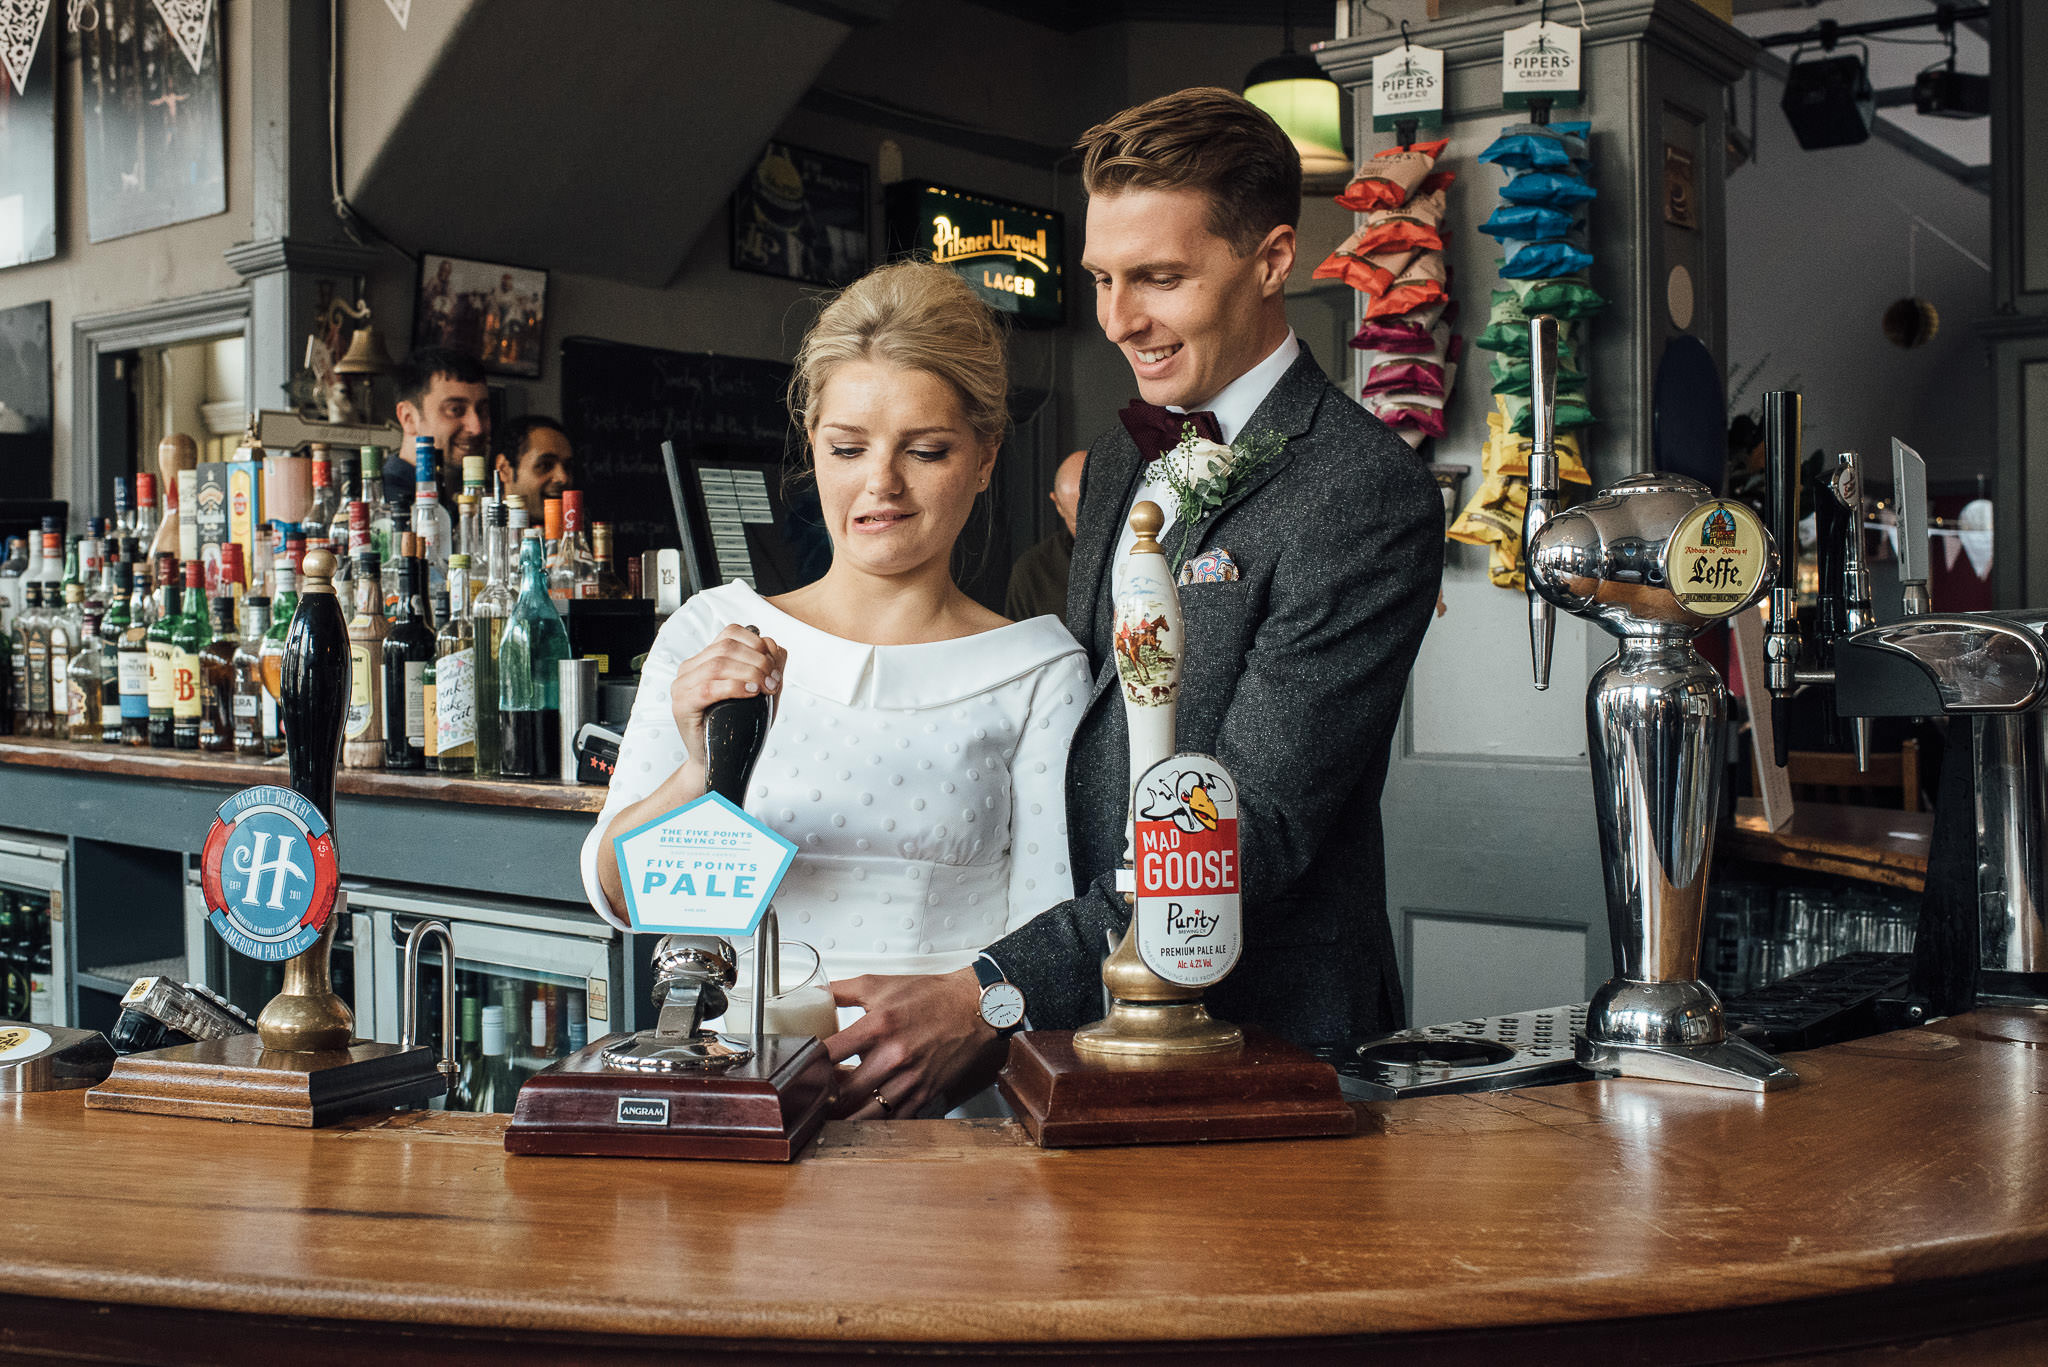 Groom pulling pint in the londesborough pub in stoke newington town hall wedding by creative and alternative london wedding photographer the shannons photography